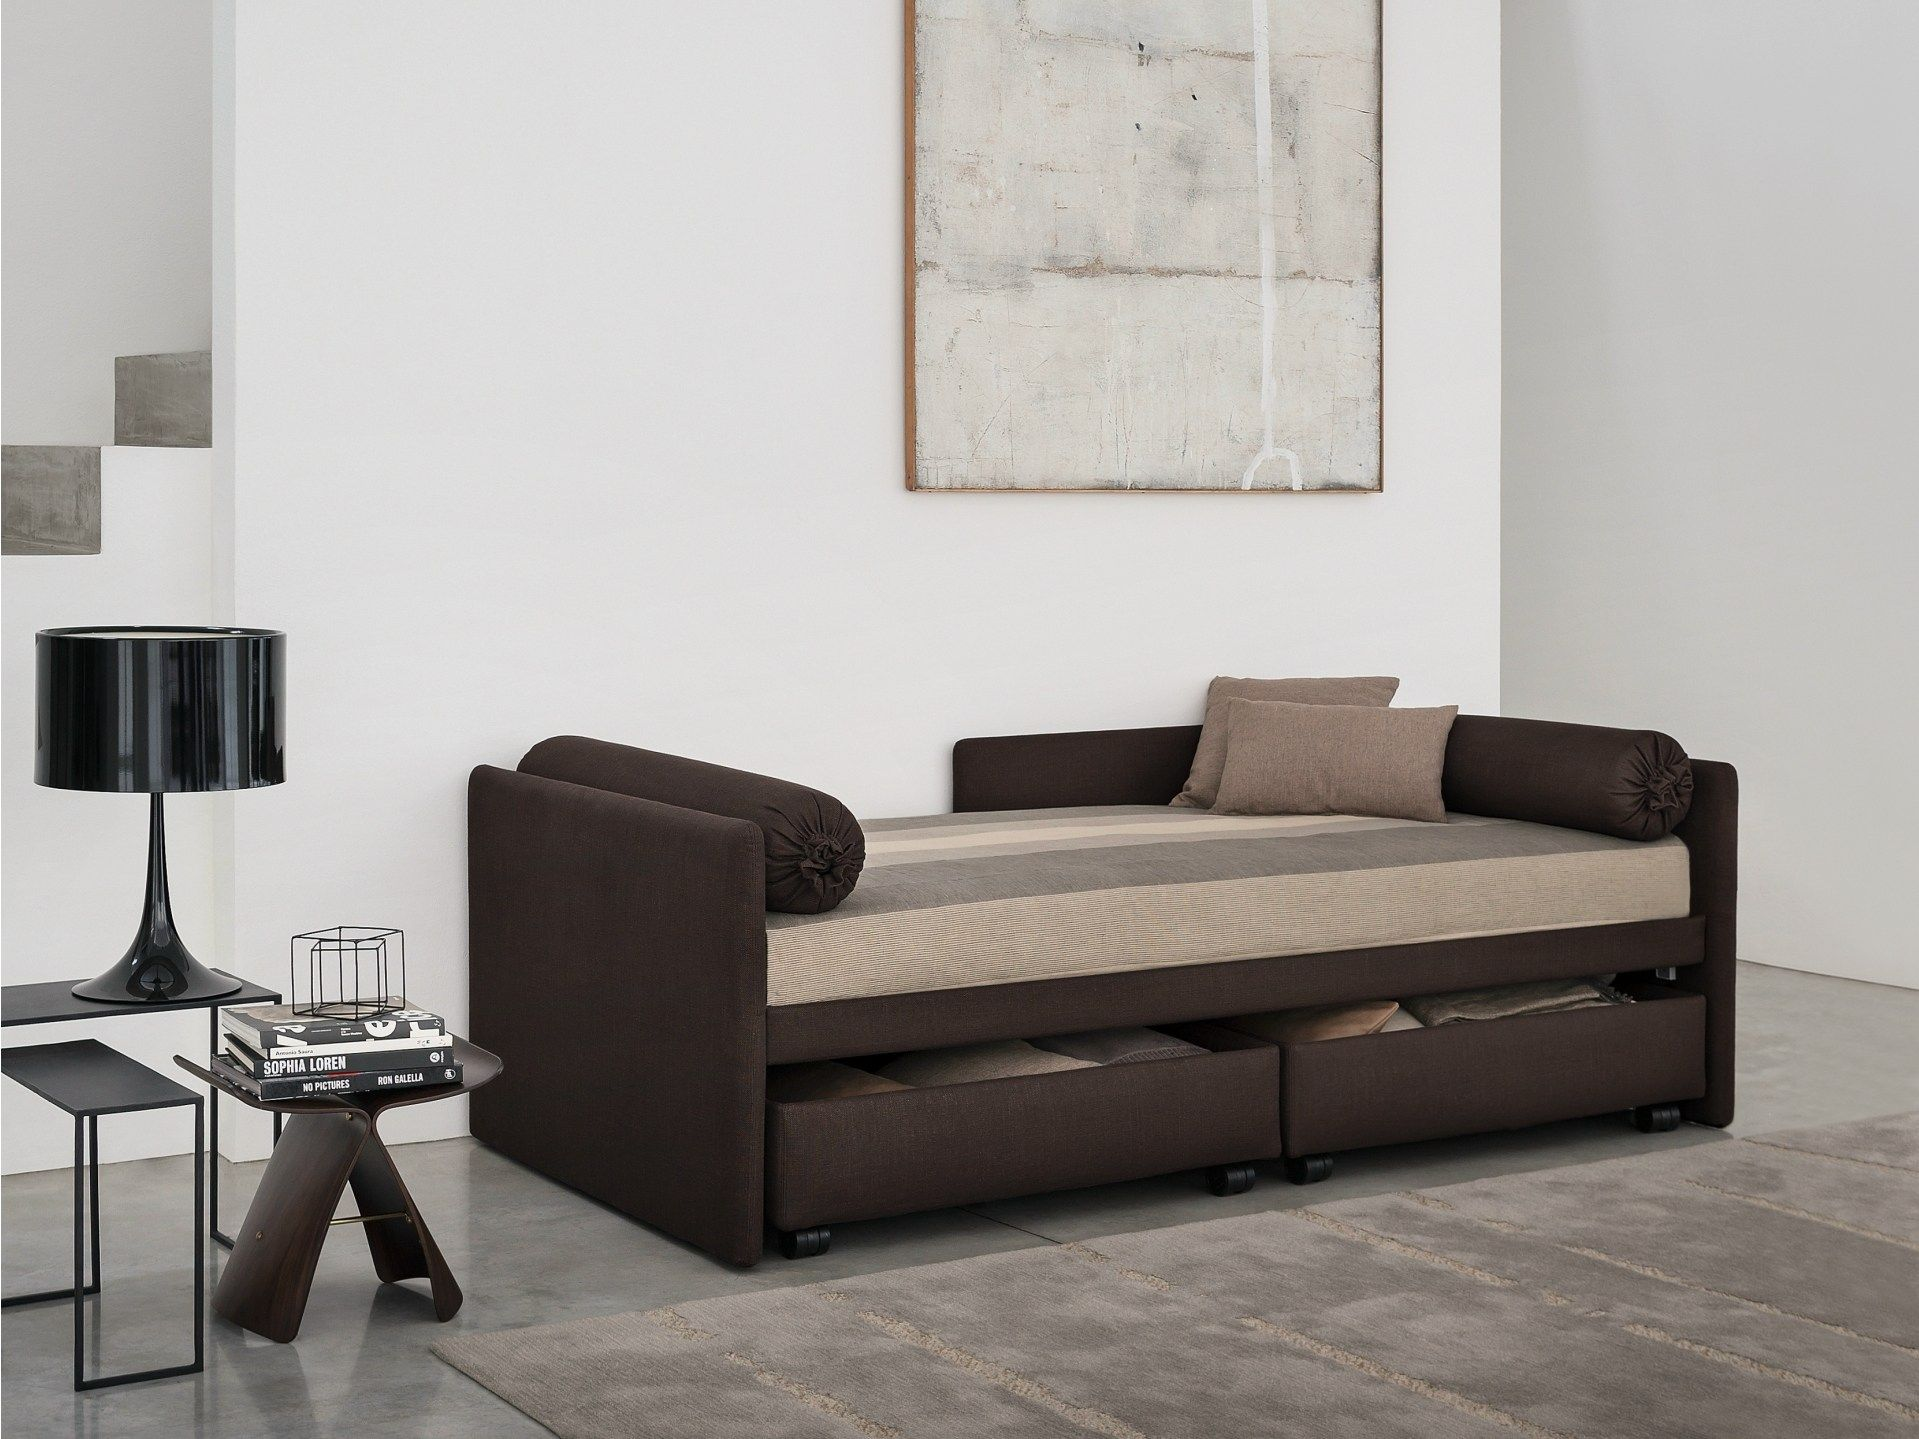 Phenomenal Fabric Bed Day Bed Duetto By Flou Ideas For Our Little Beutiful Home Inspiration Papxelindsey Bellcom